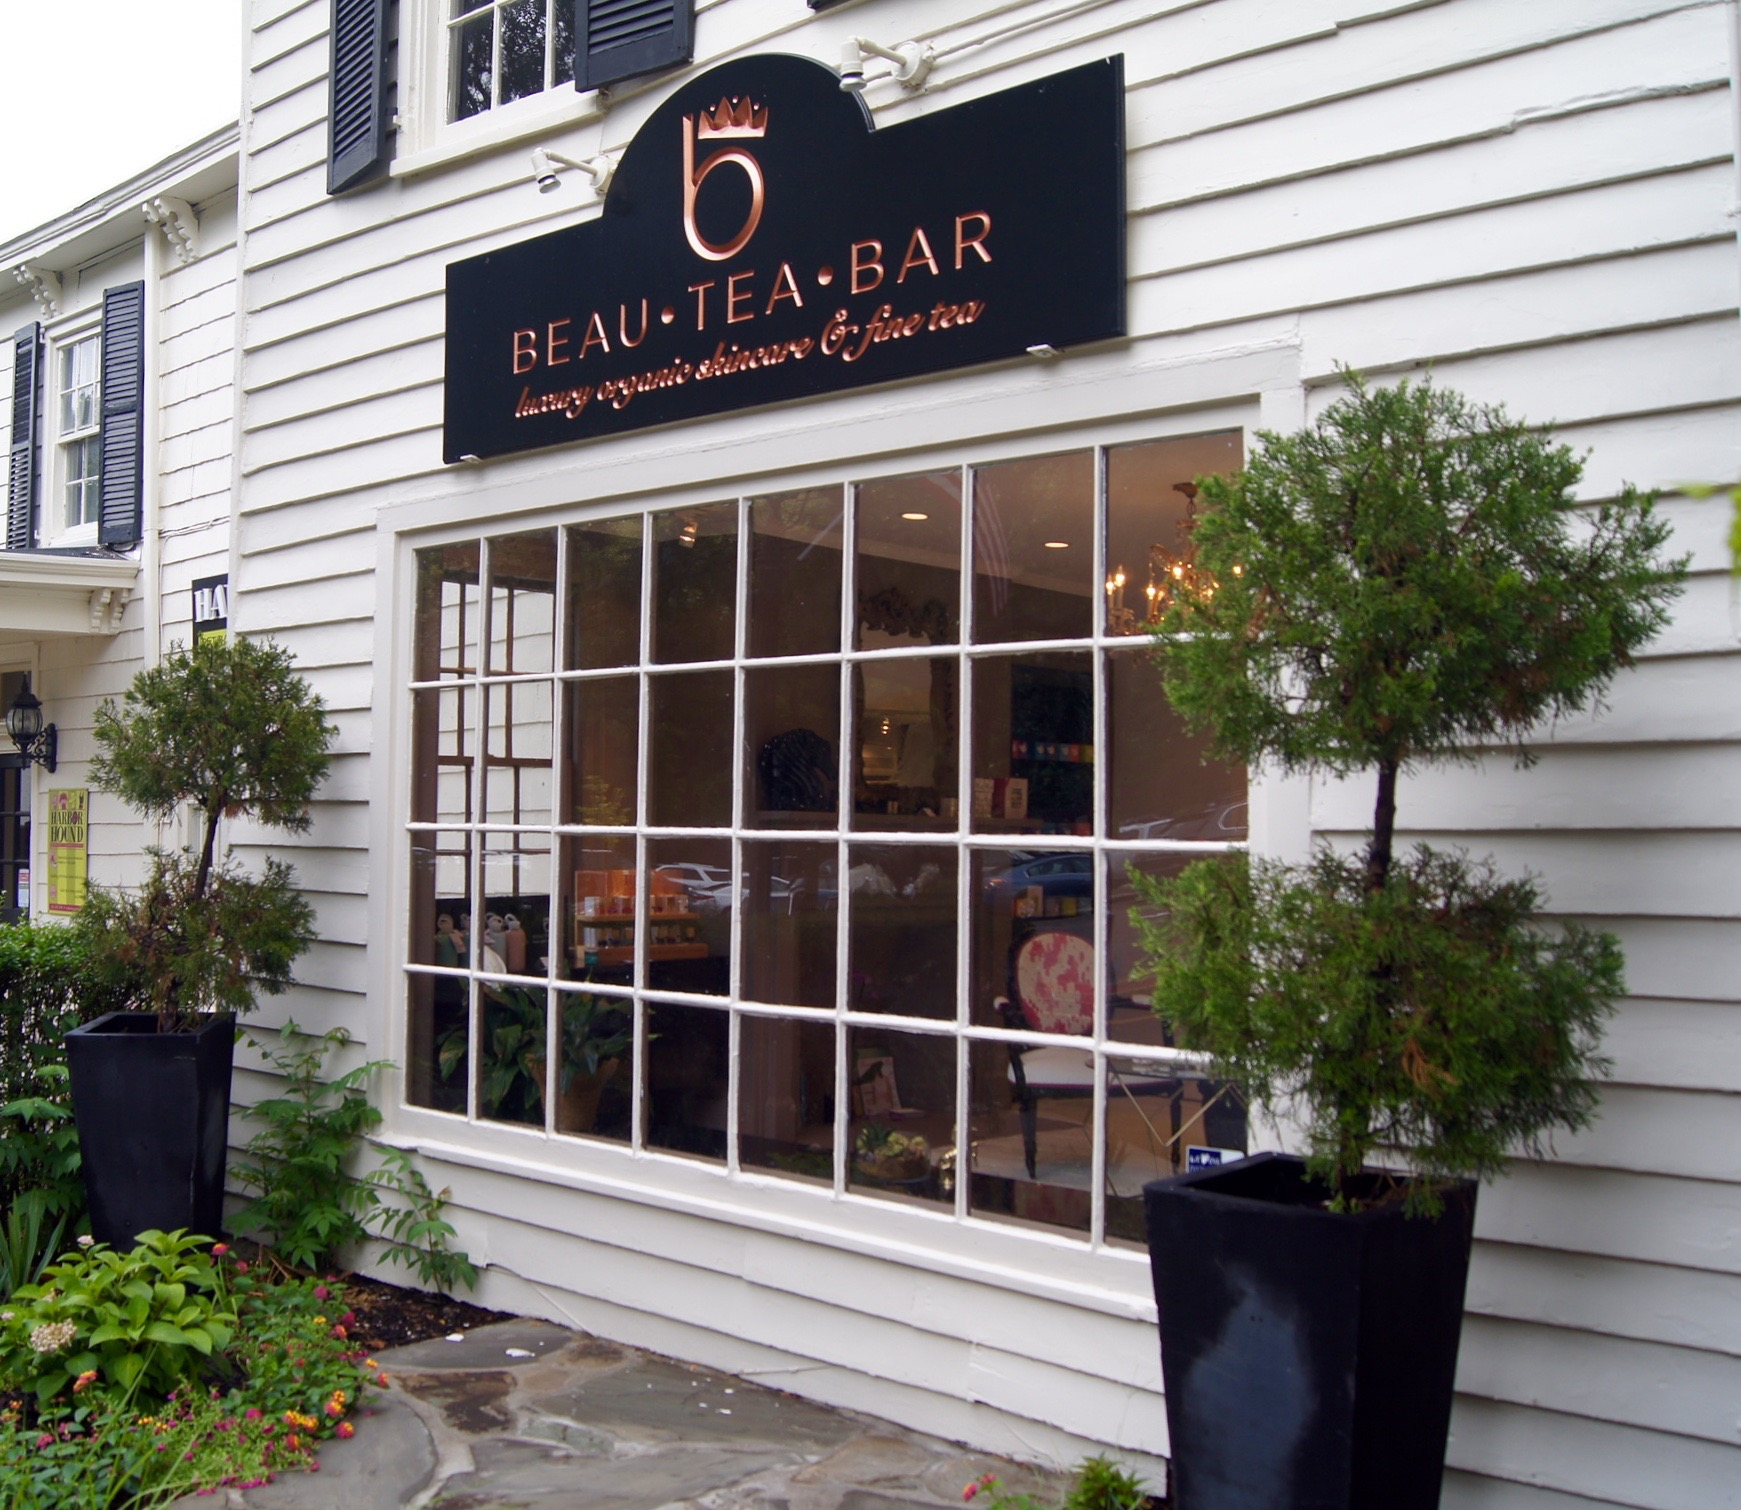 Cold Spring Harbor's Beau Tea Bar is the Island's first green beauty store. image: bridget shirvell